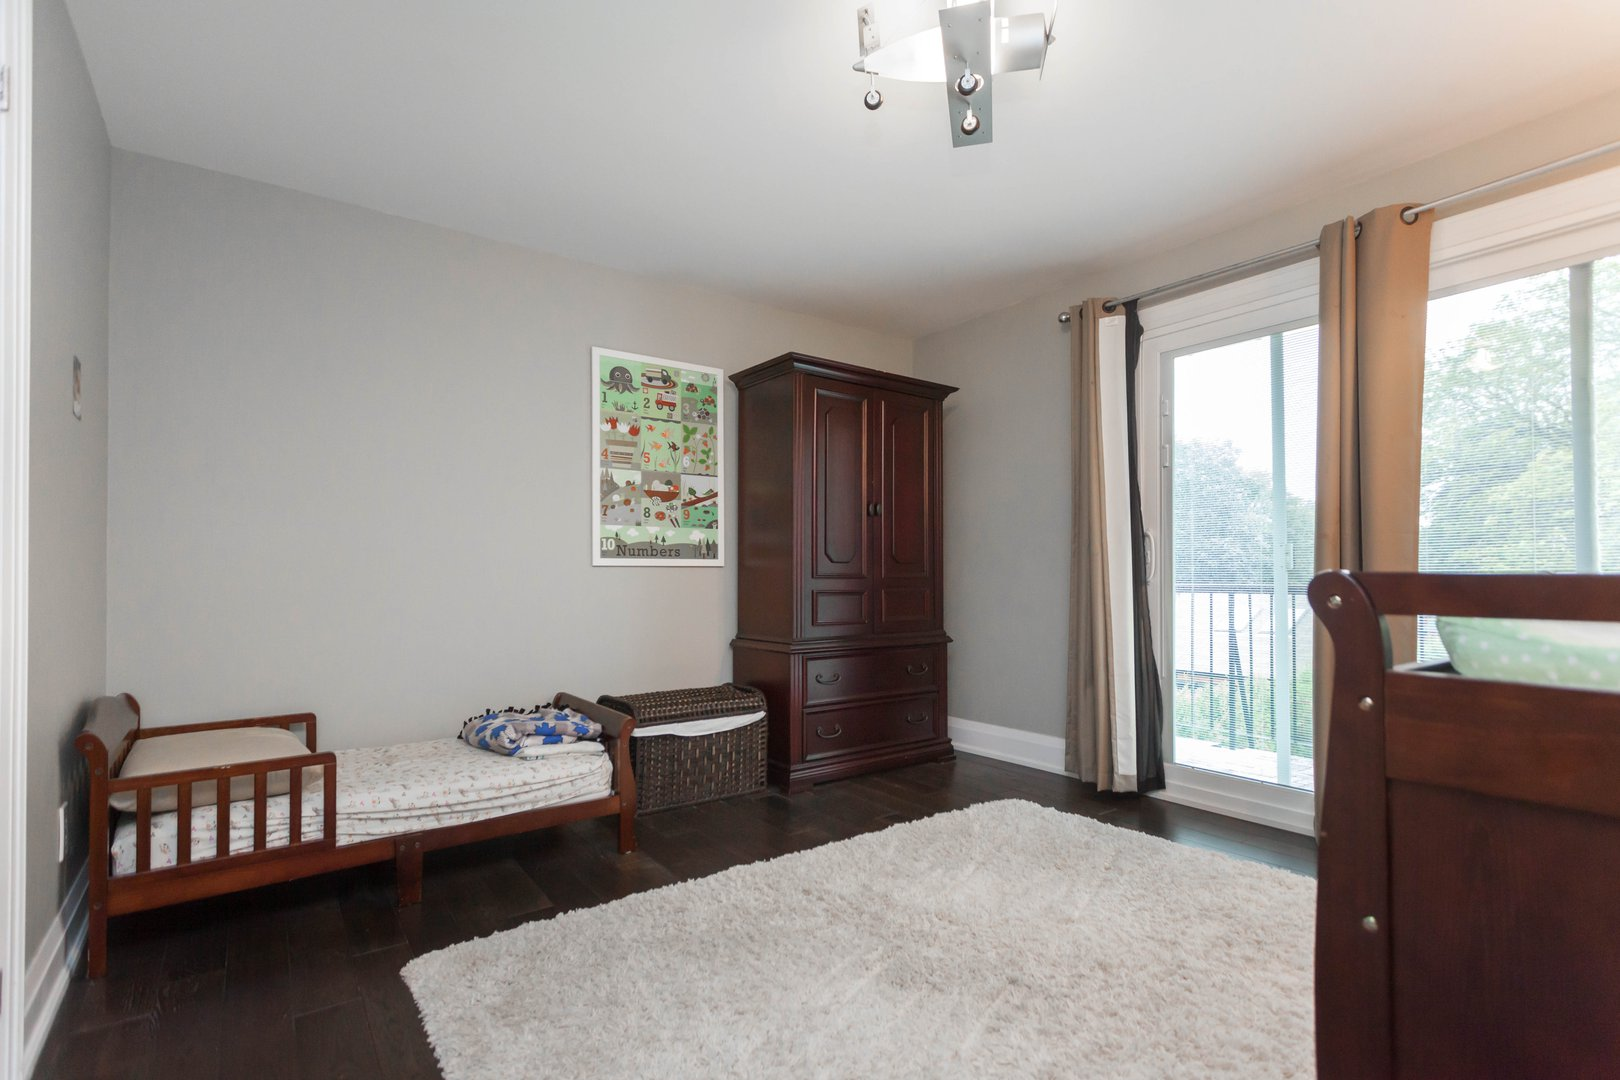 House for rent at 84 Laurel Avenue, Etobicoke, ON. This is the bedroom with natural light and hardwood floor.